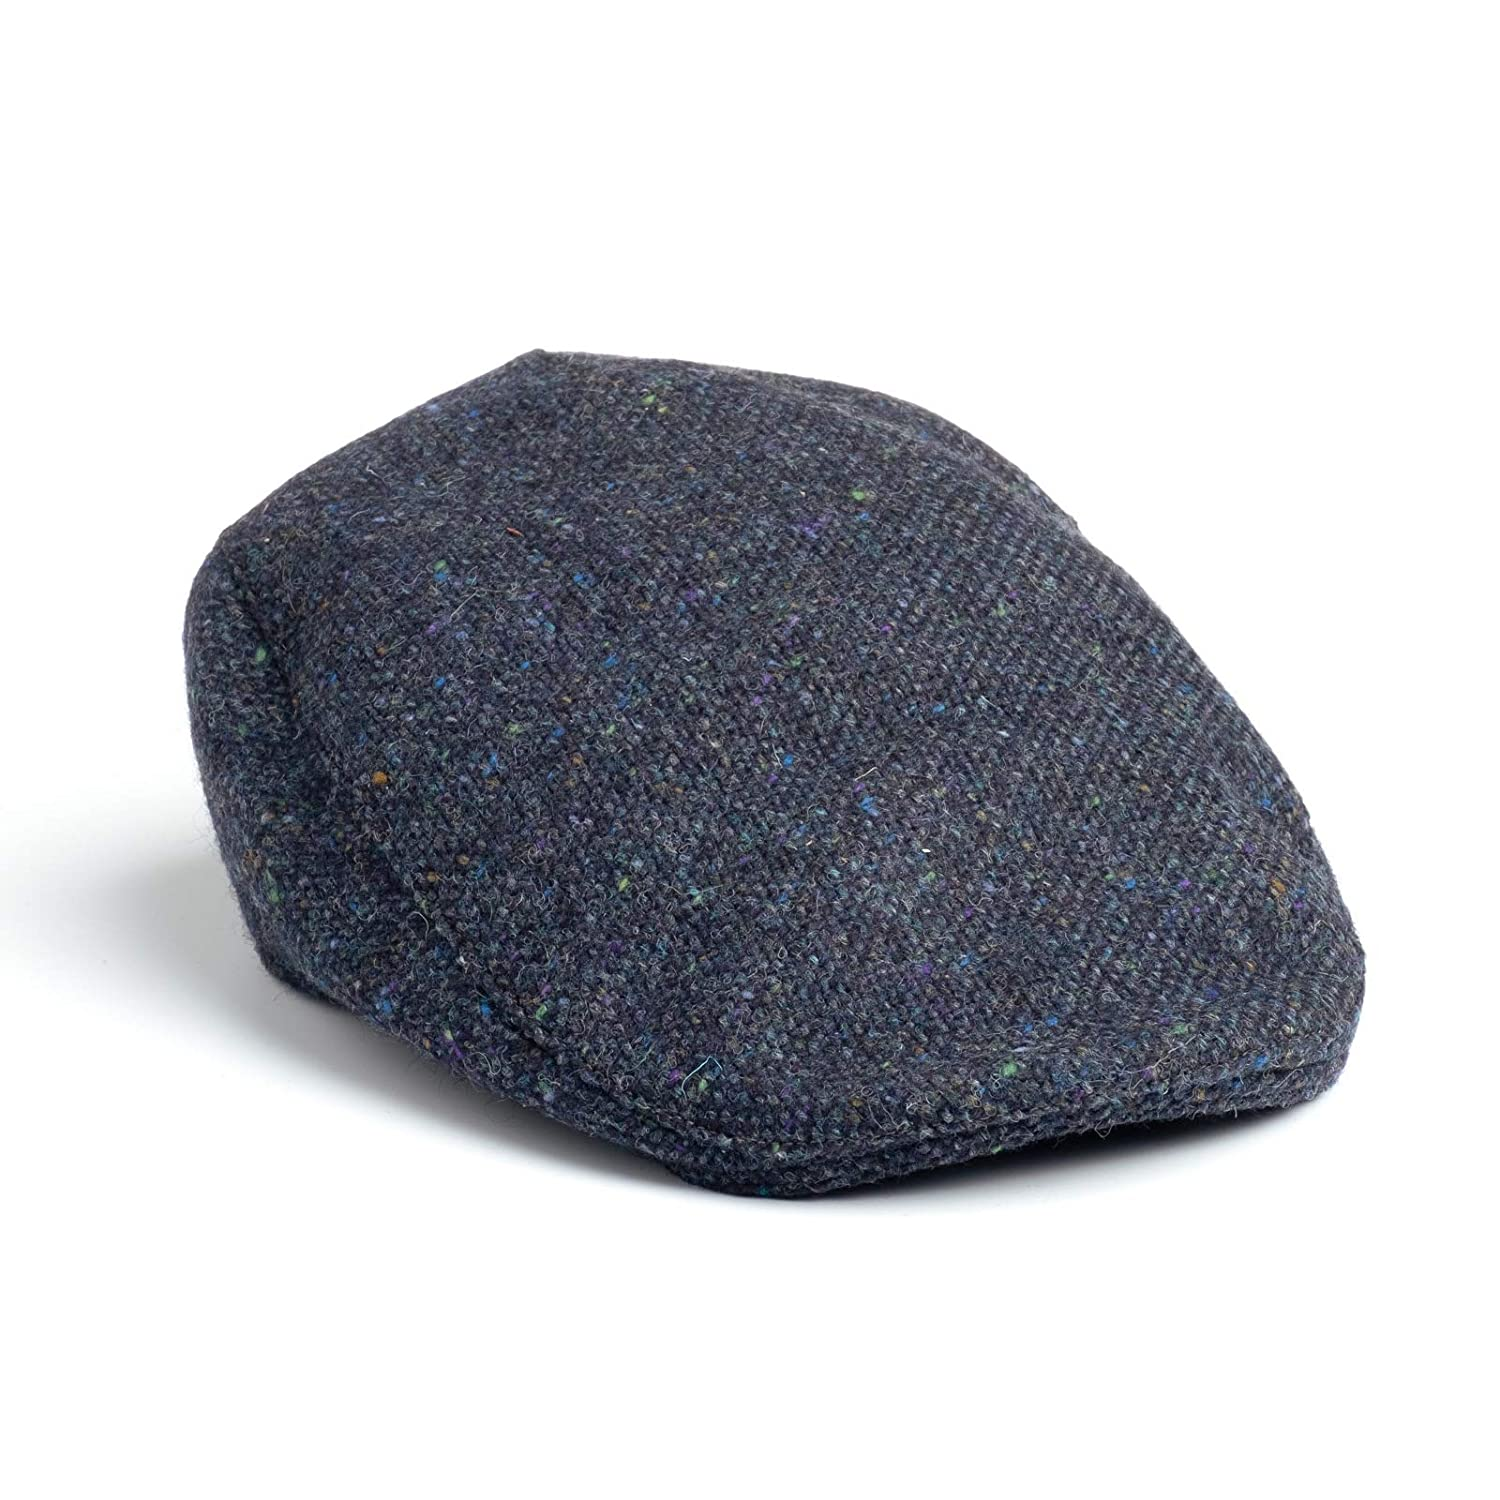 0507969bd55 Hanna Hats Men s Donegal Tweed Donegal Touring Cap at Amazon Men s Clothing  store